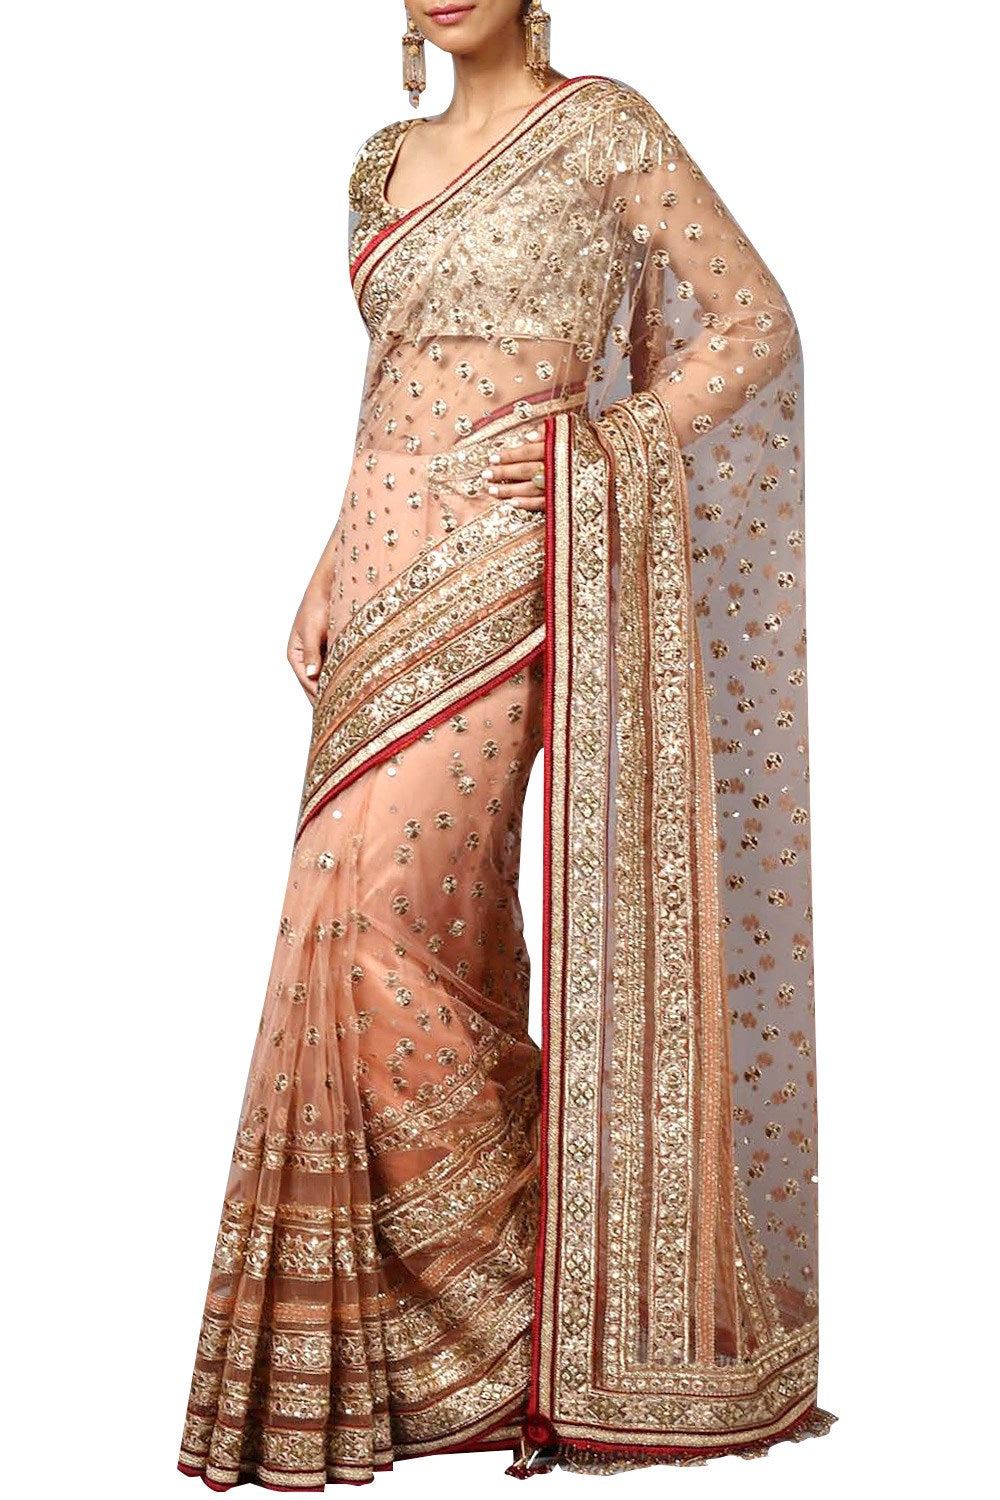 Peach Colour Wedding Saree with Gotta Work